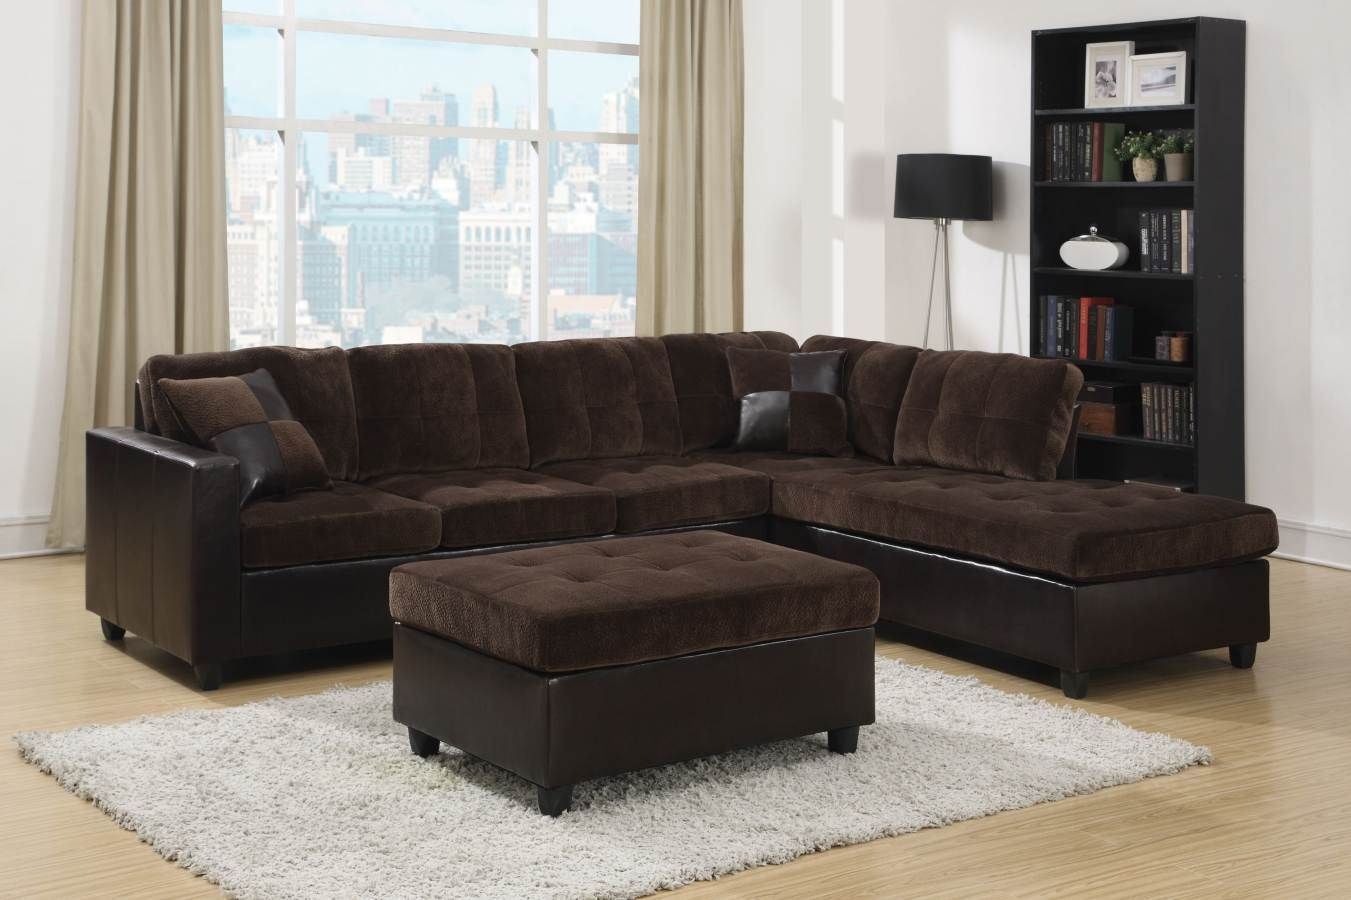 My Perfect Find On Likethat Decor Sectional Sofa Upholstered Sectional Sectional Sofa Couch